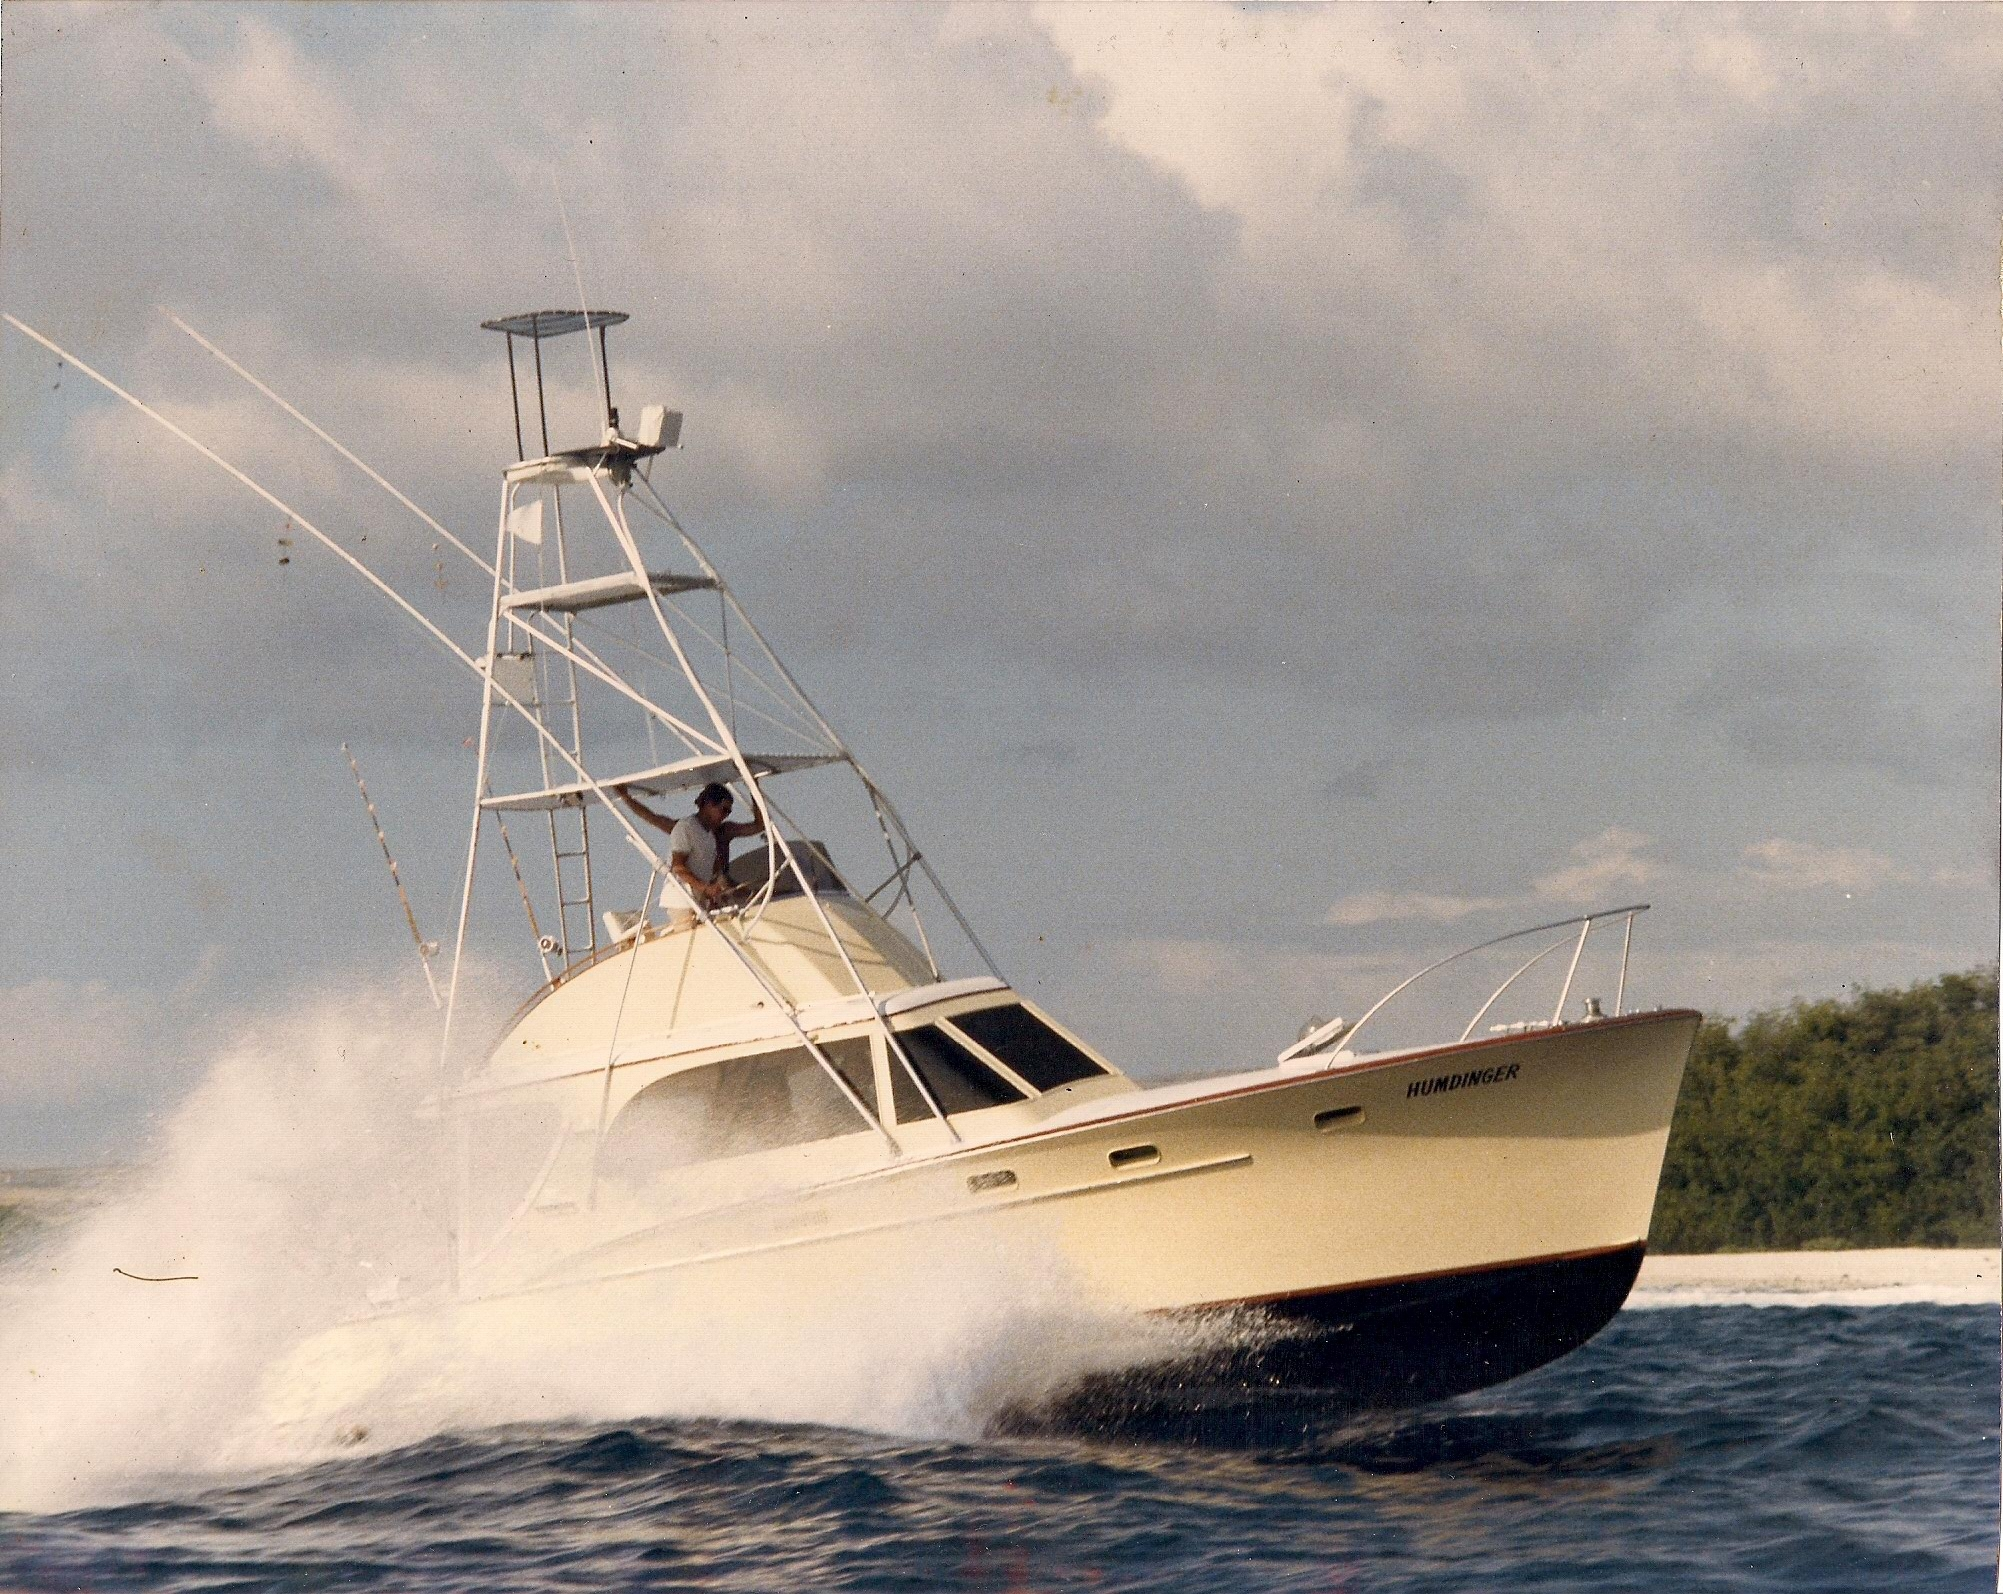 Humdinger sportfishing kona hawaii fishing charters in for Kona fishing charters